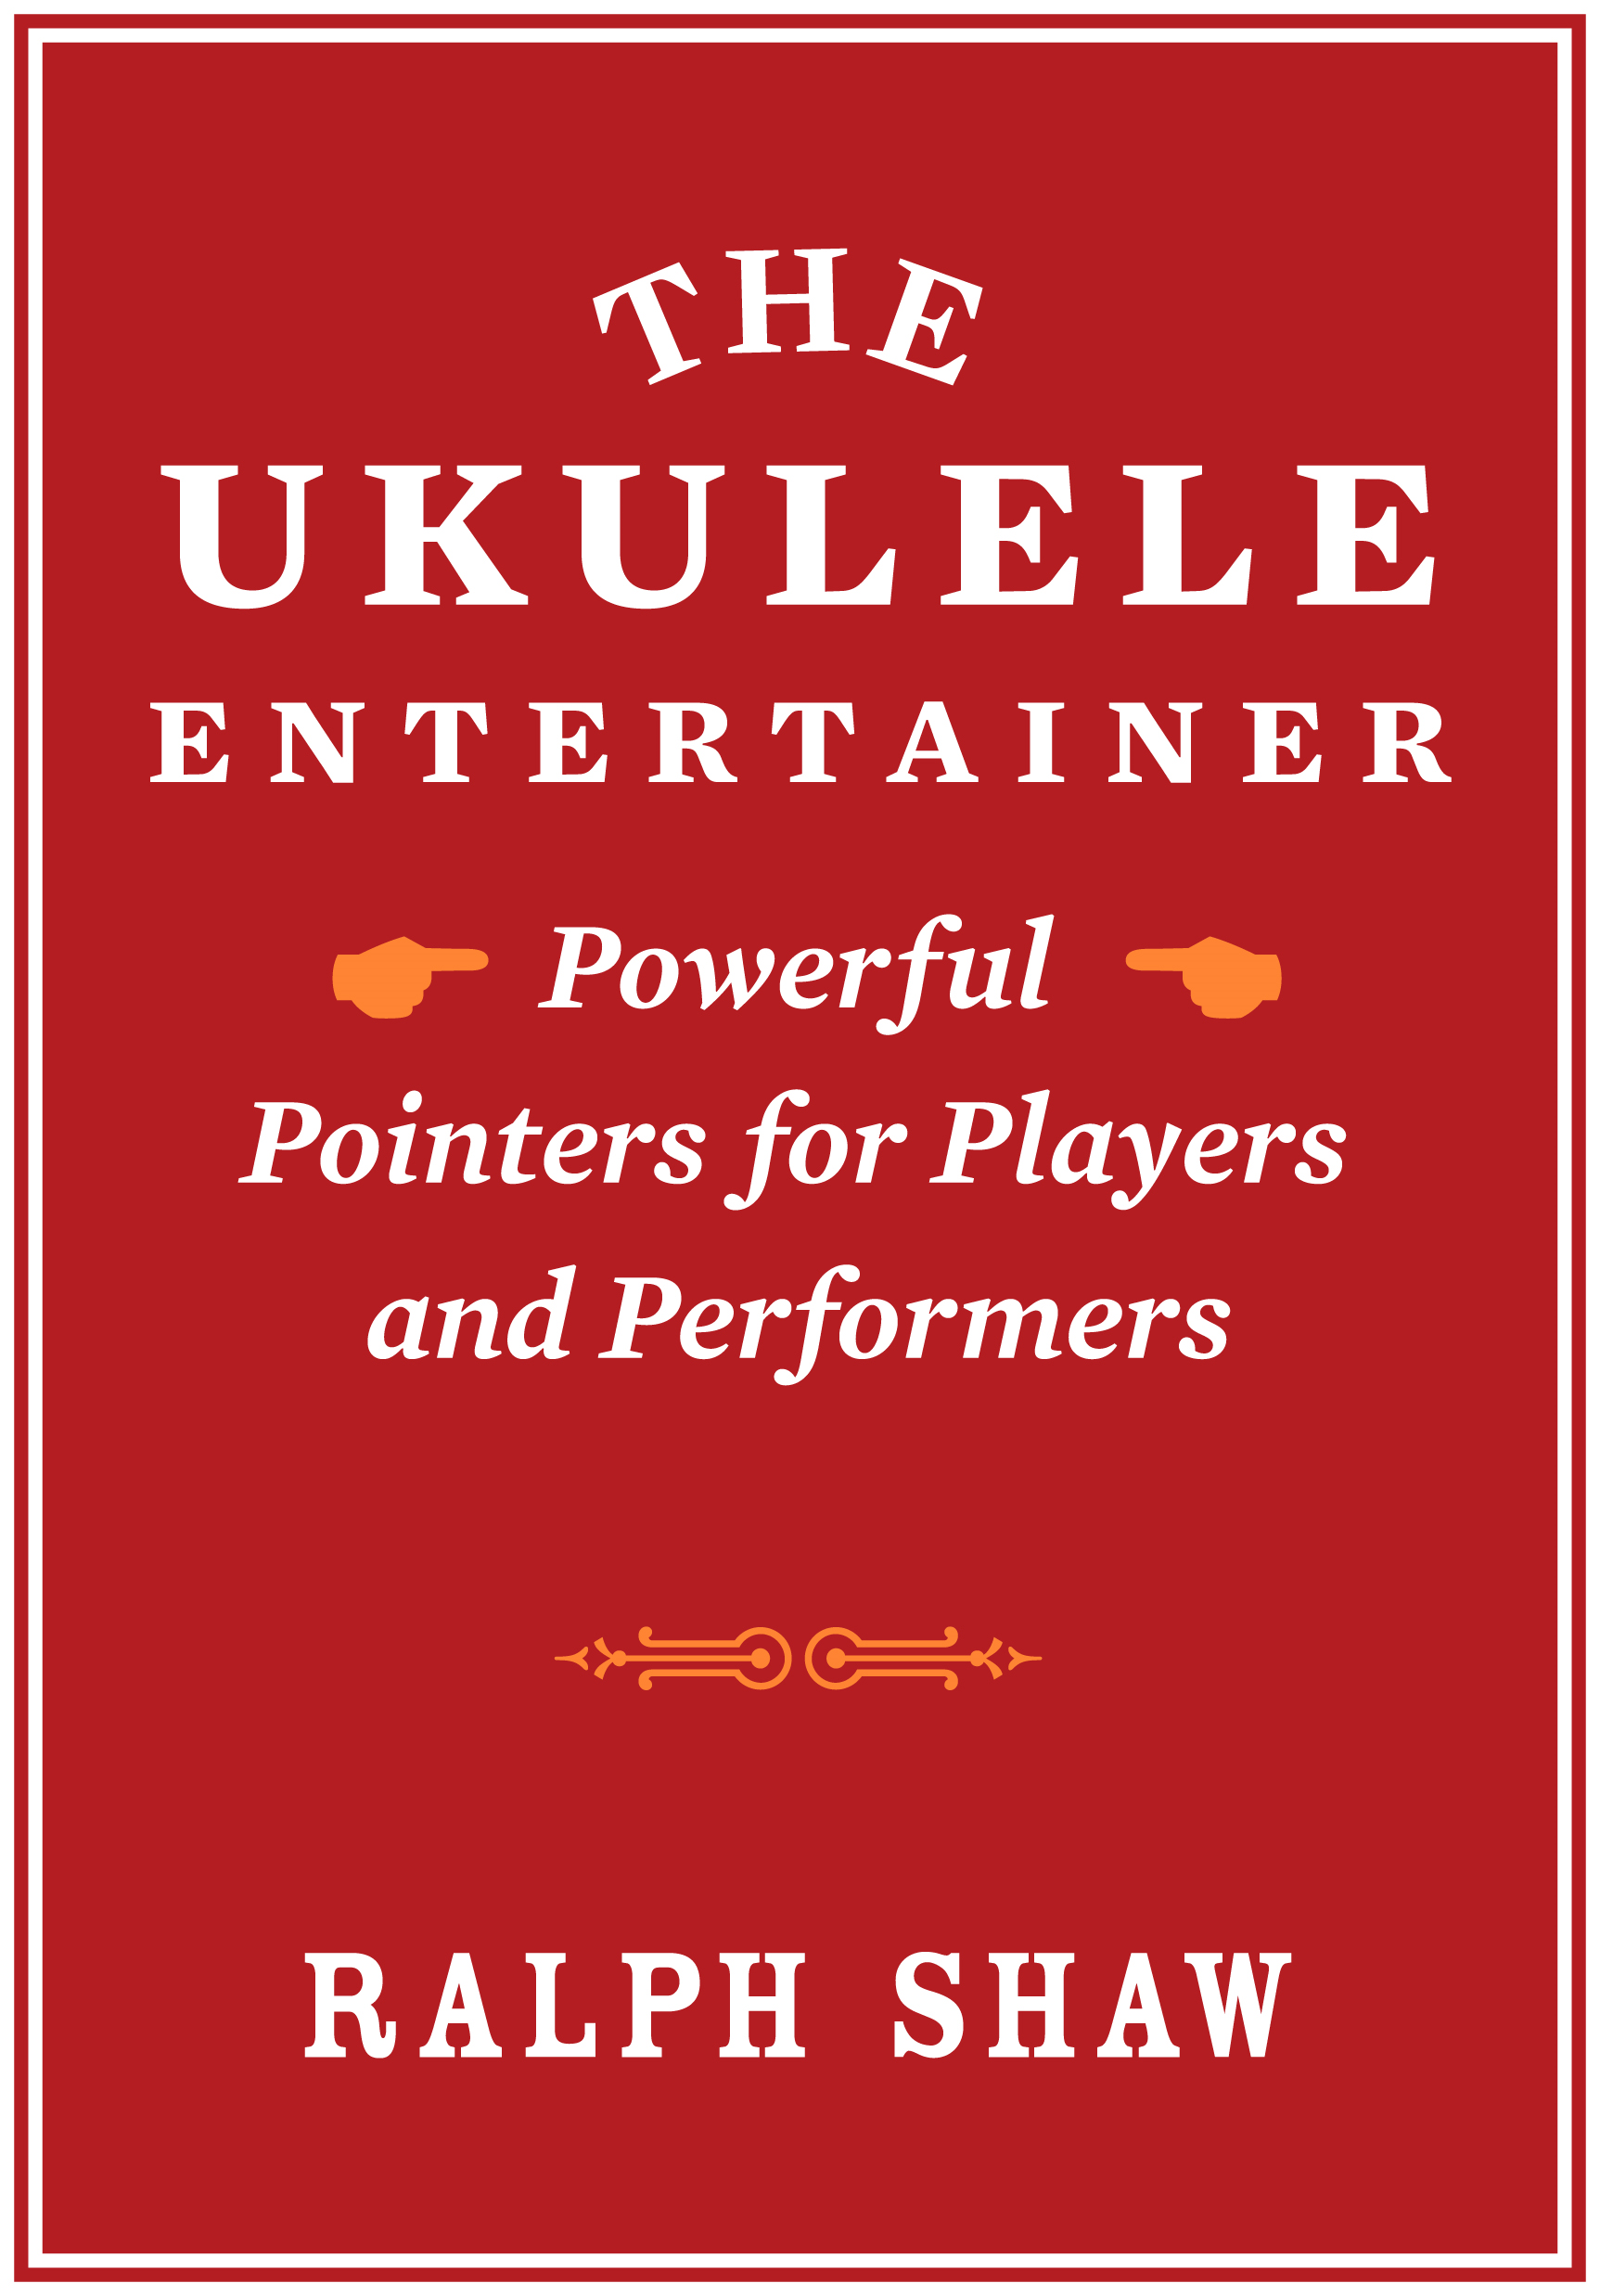 The Ukulele Entertainer: Powerful Pointers for Players and Performers By: Ralph Shaw